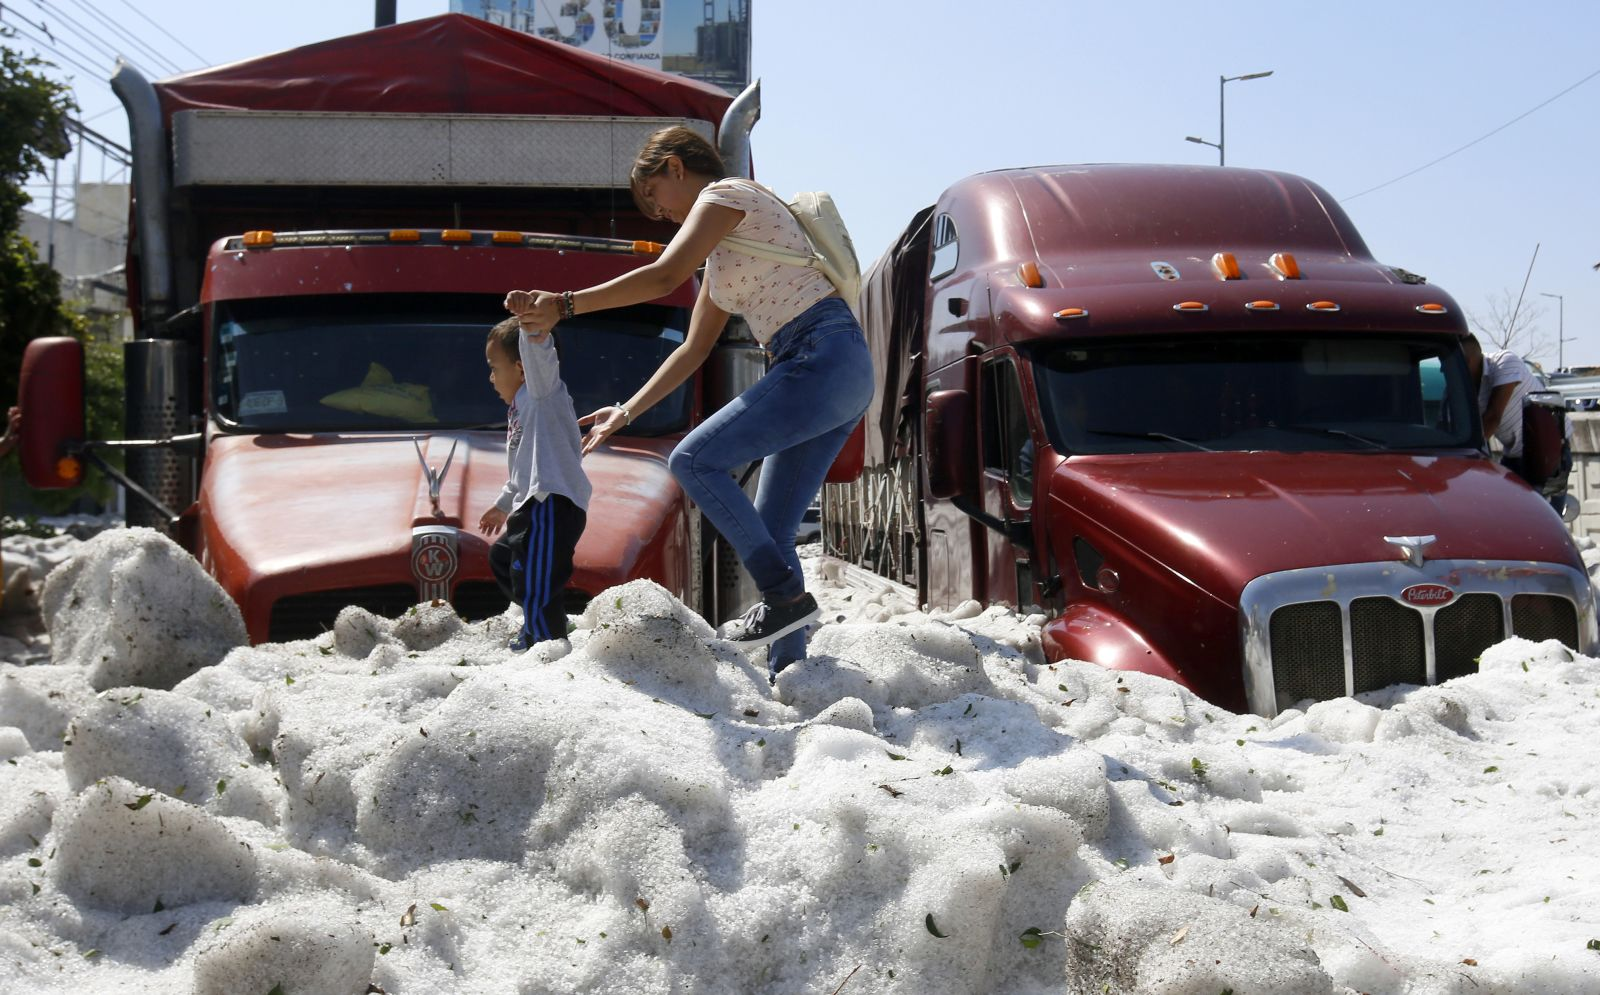 In pictures: Mexican city struck by 'freakish' hailstorm